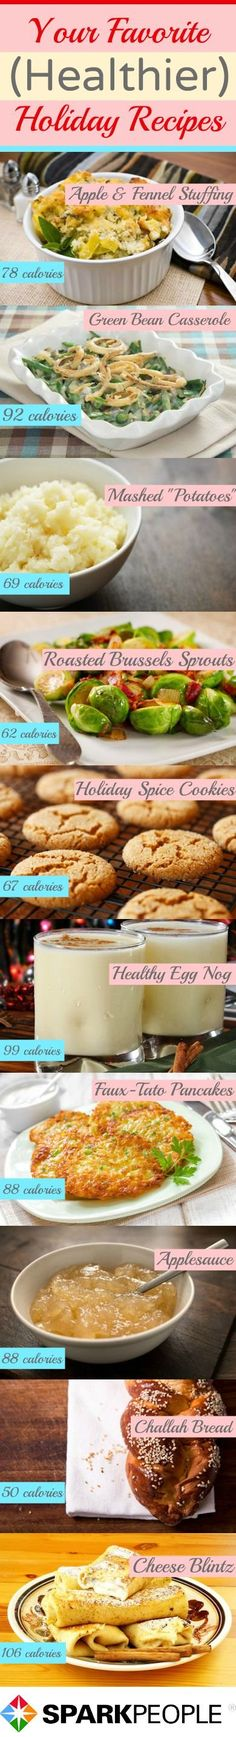 Health(ier) Holiday Favorites. Try these healthier recipes this holiday season!   via @SparkPeople